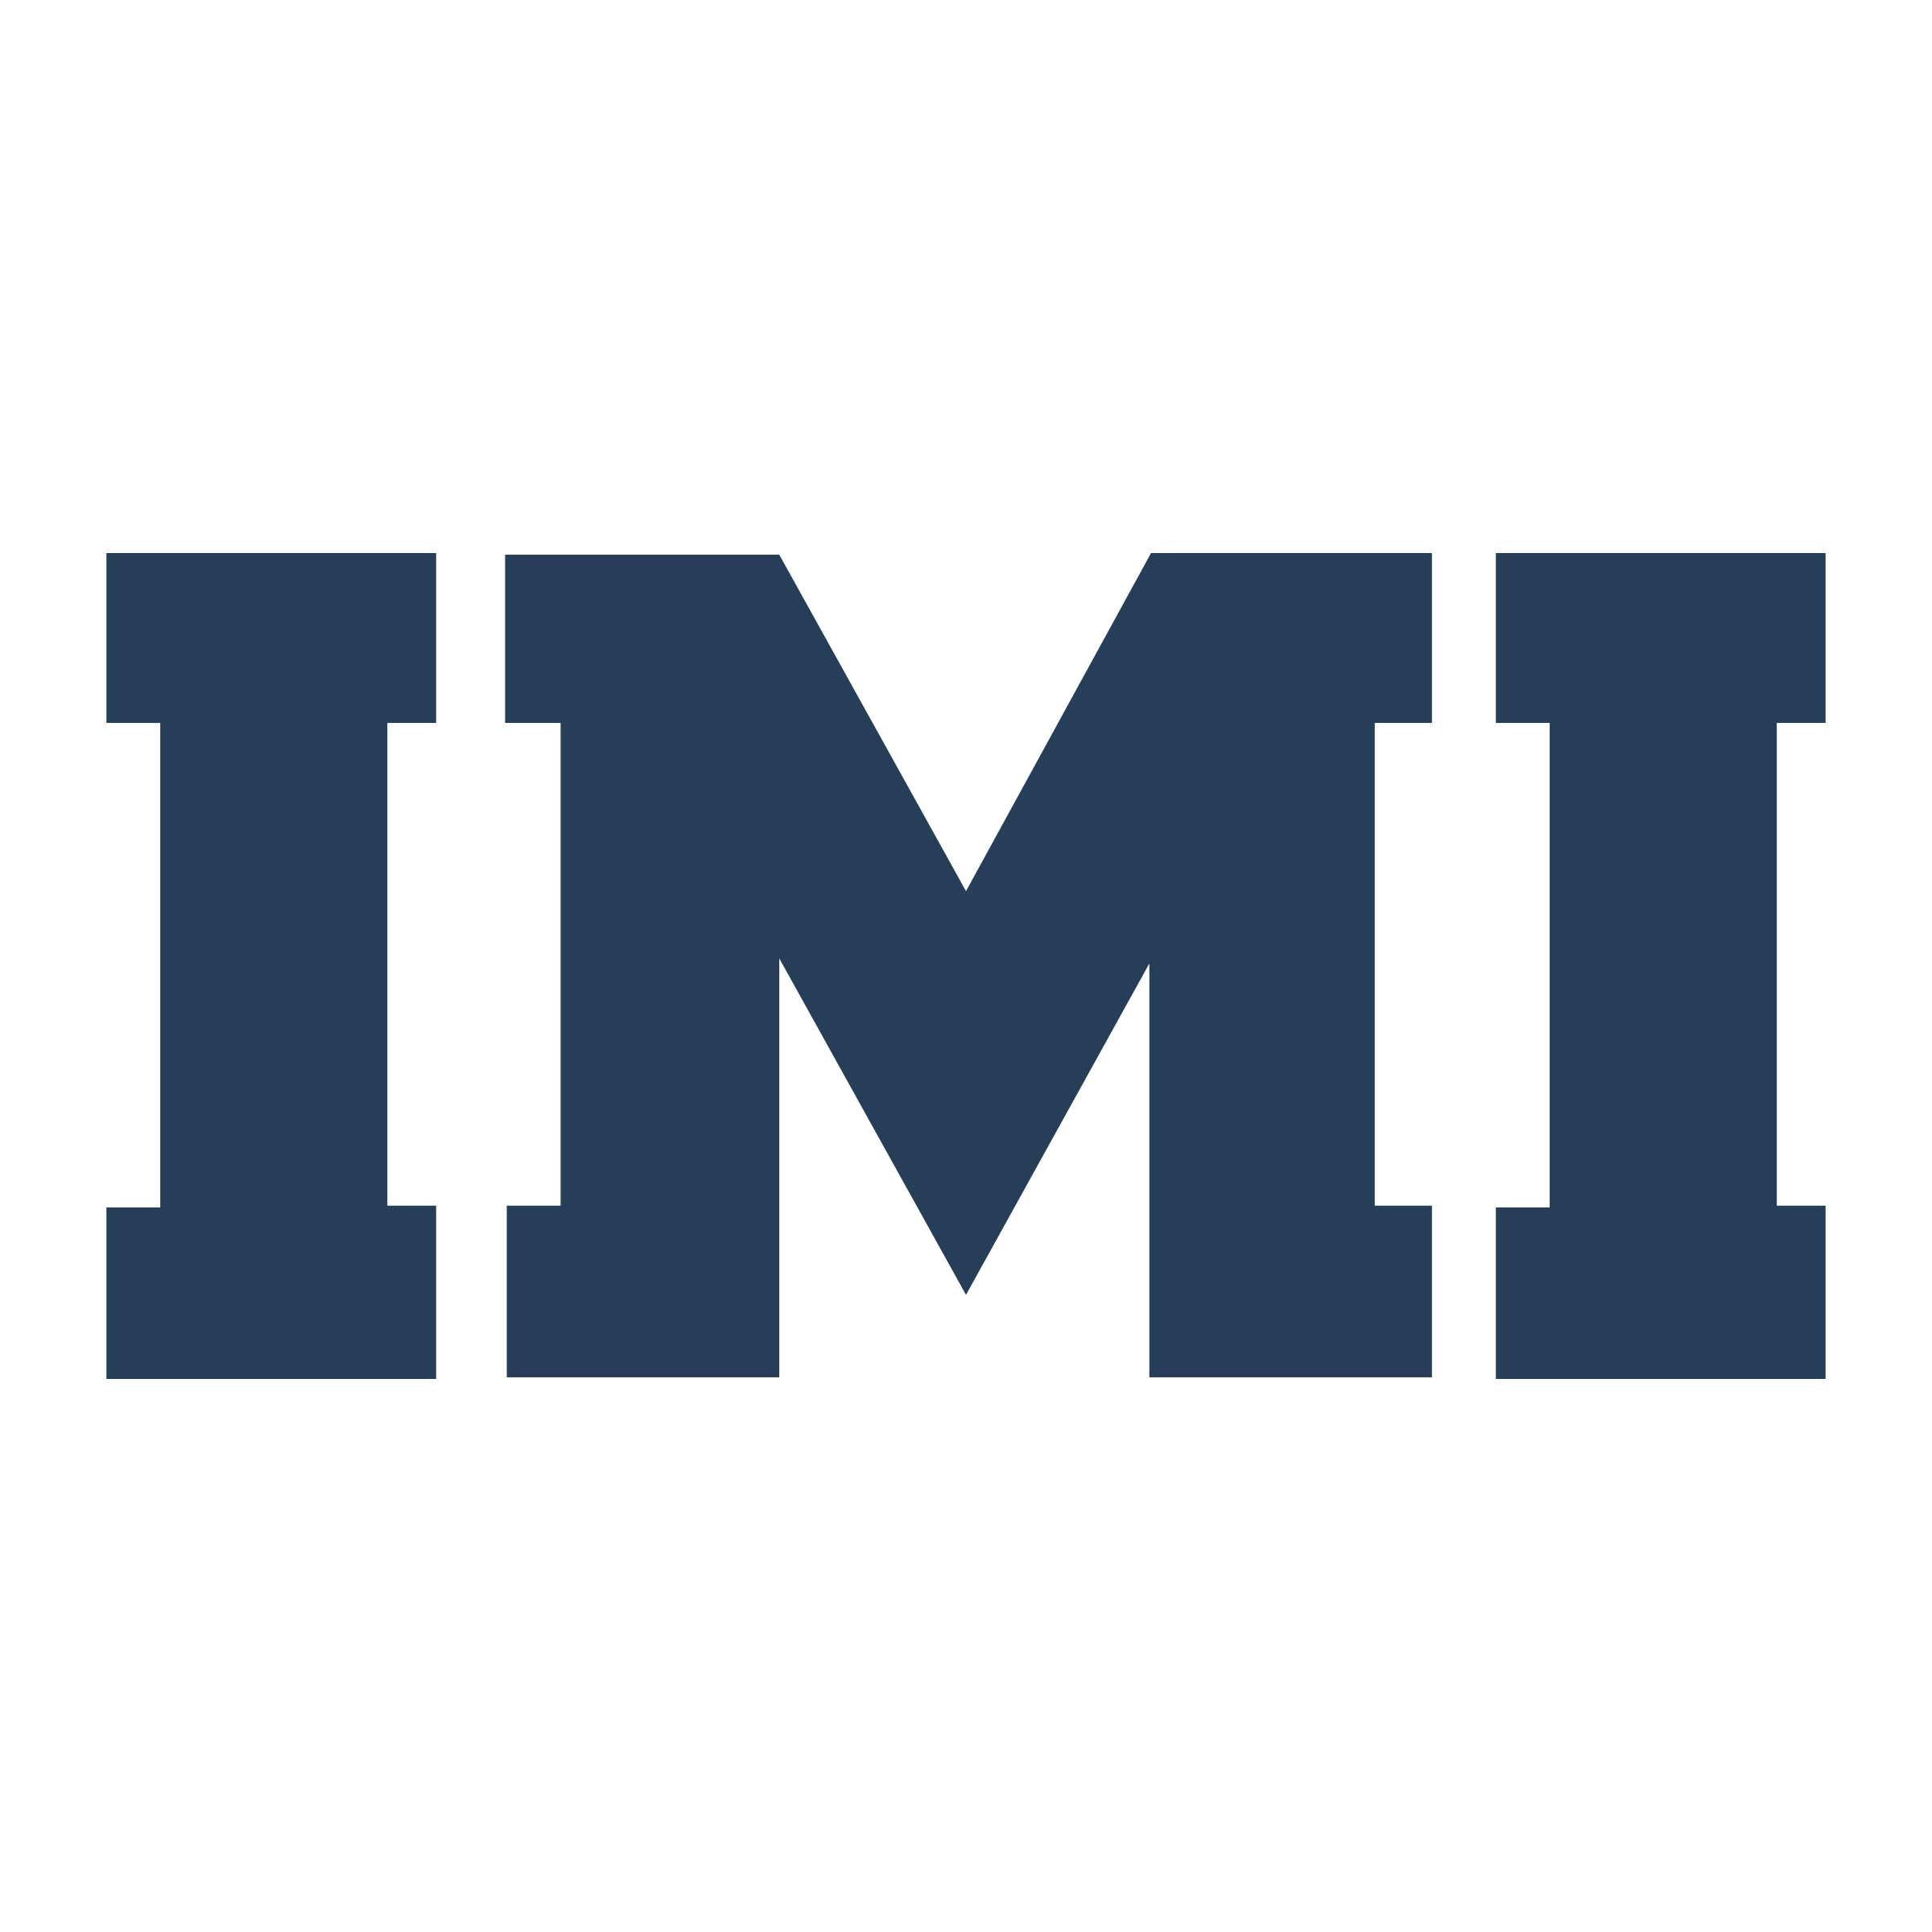 IMI Logo PNG Transparent & SVG Vector.